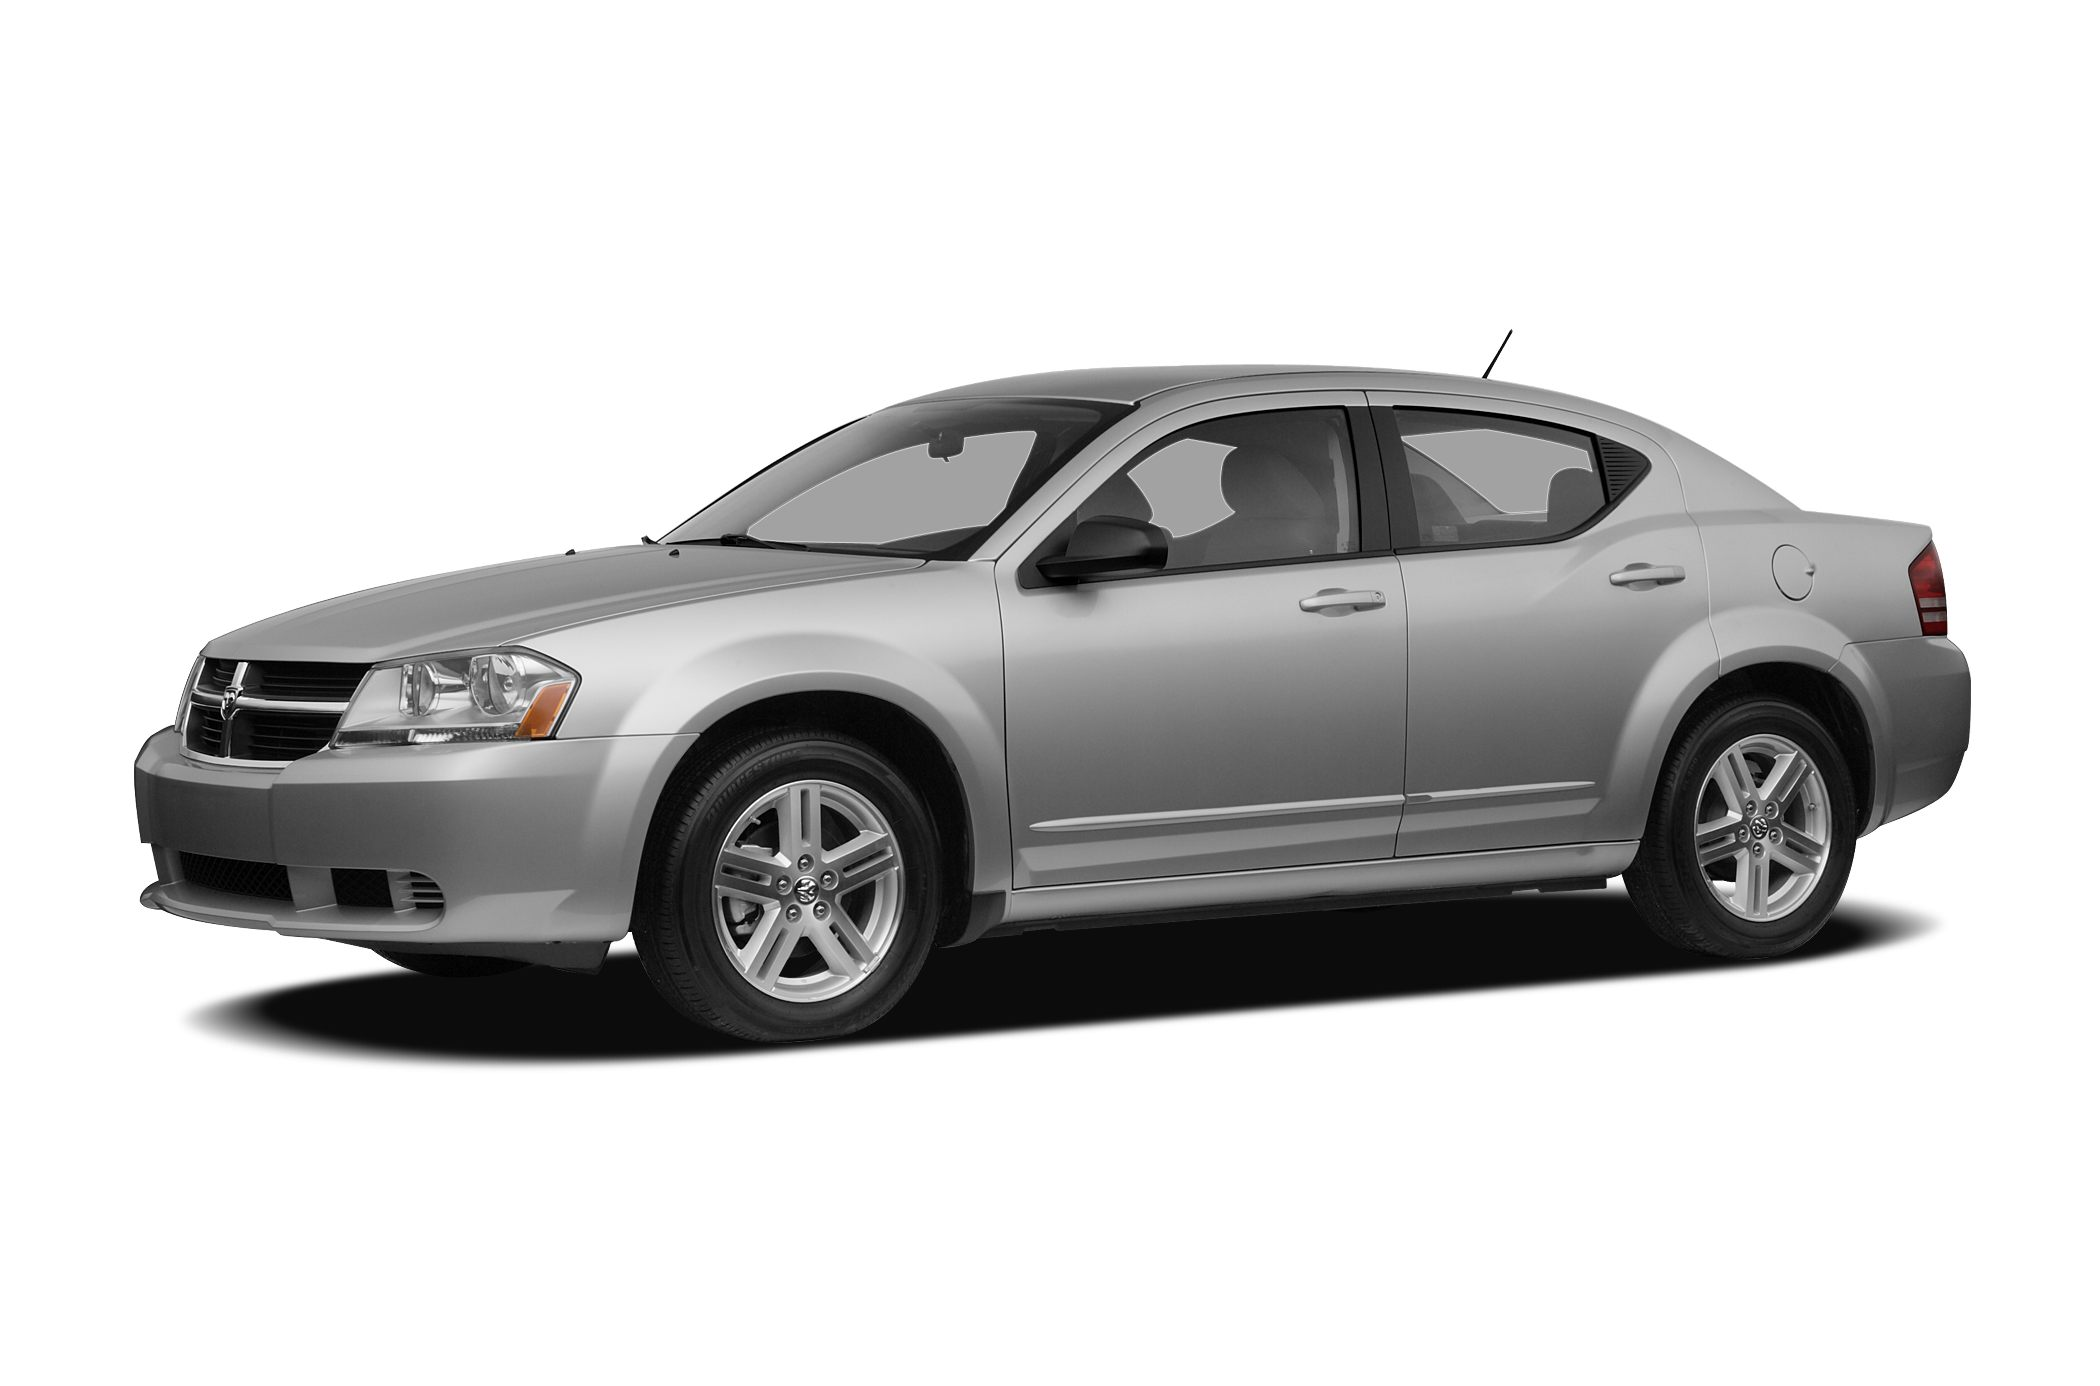 2008 Dodge Avenger SXT Sedan for sale in Maysville for $0 with 54,013 miles